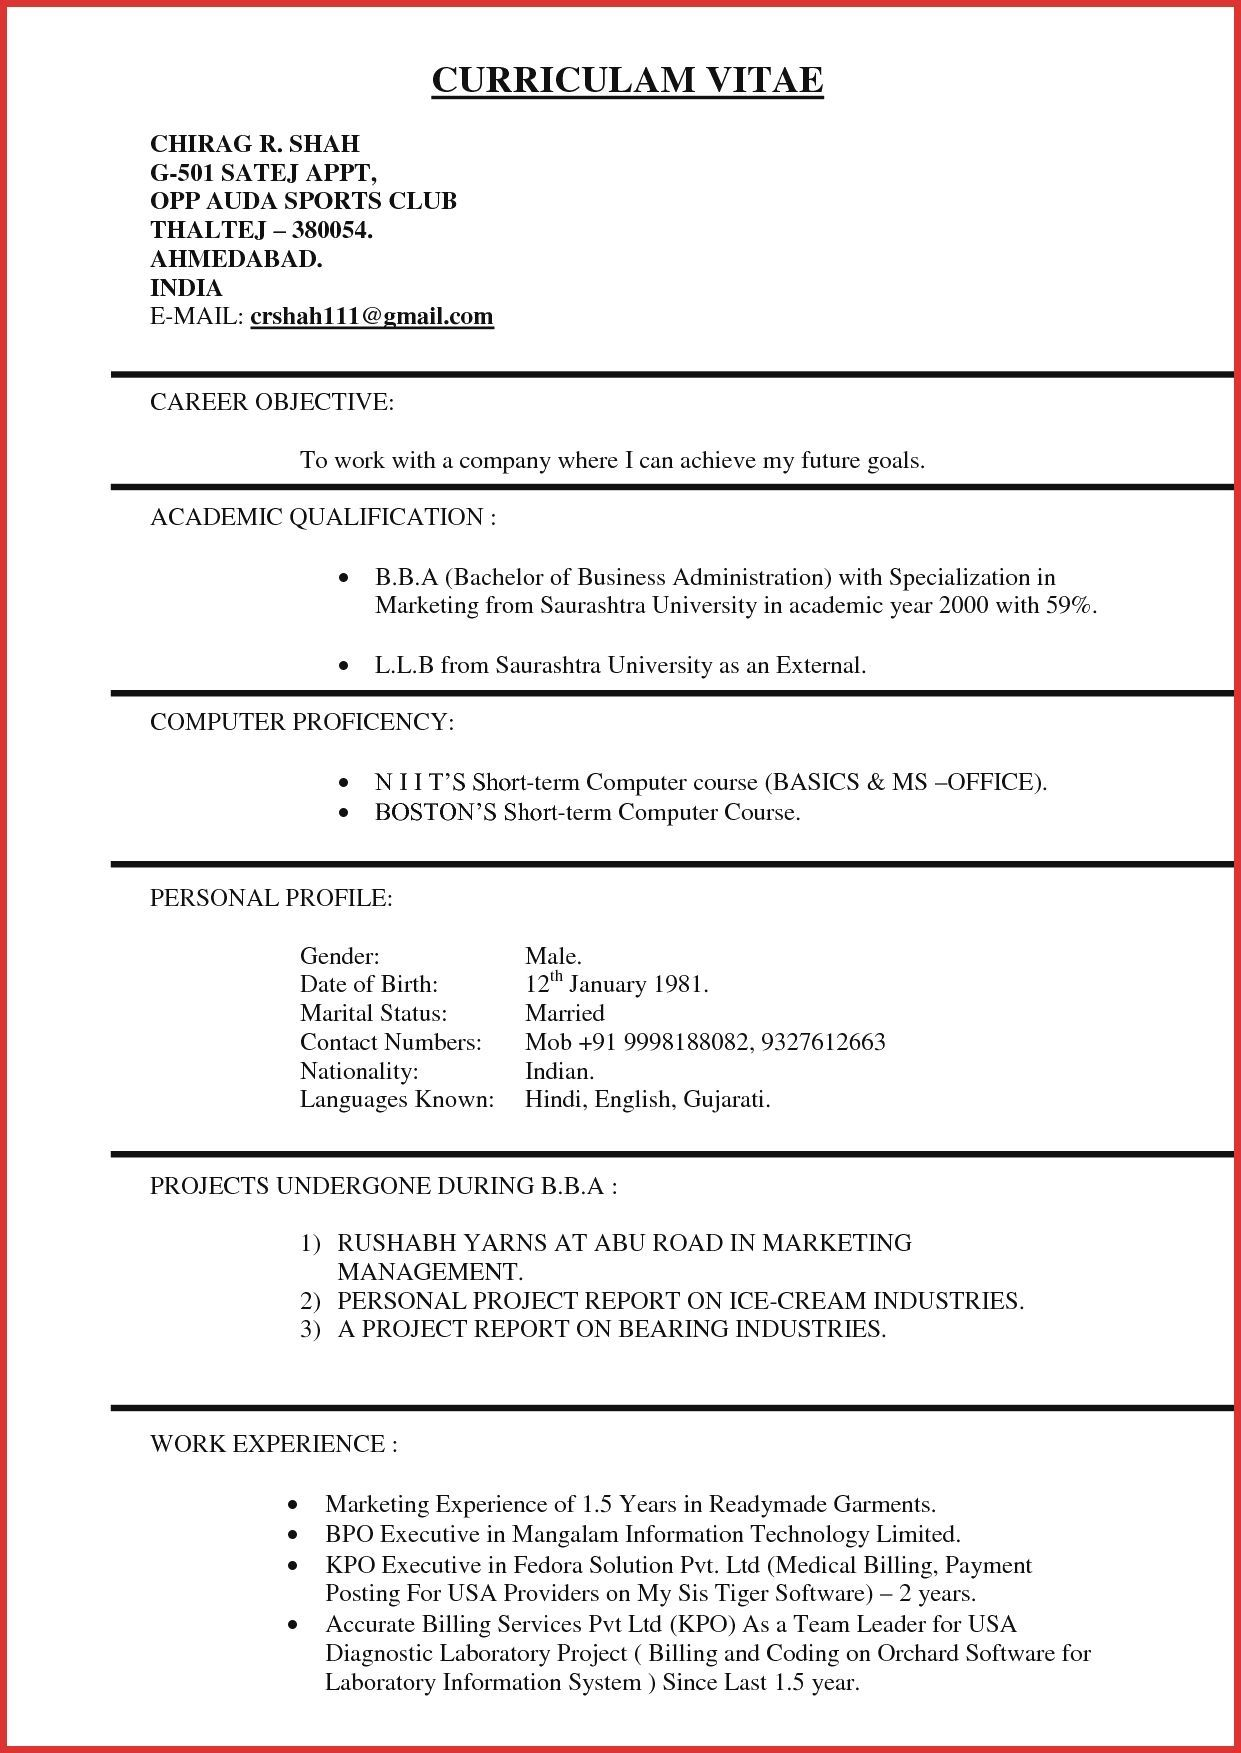 Resume Format Kpo Format Resume Job Resume Format Downloadable Resume Template Marketing Resume